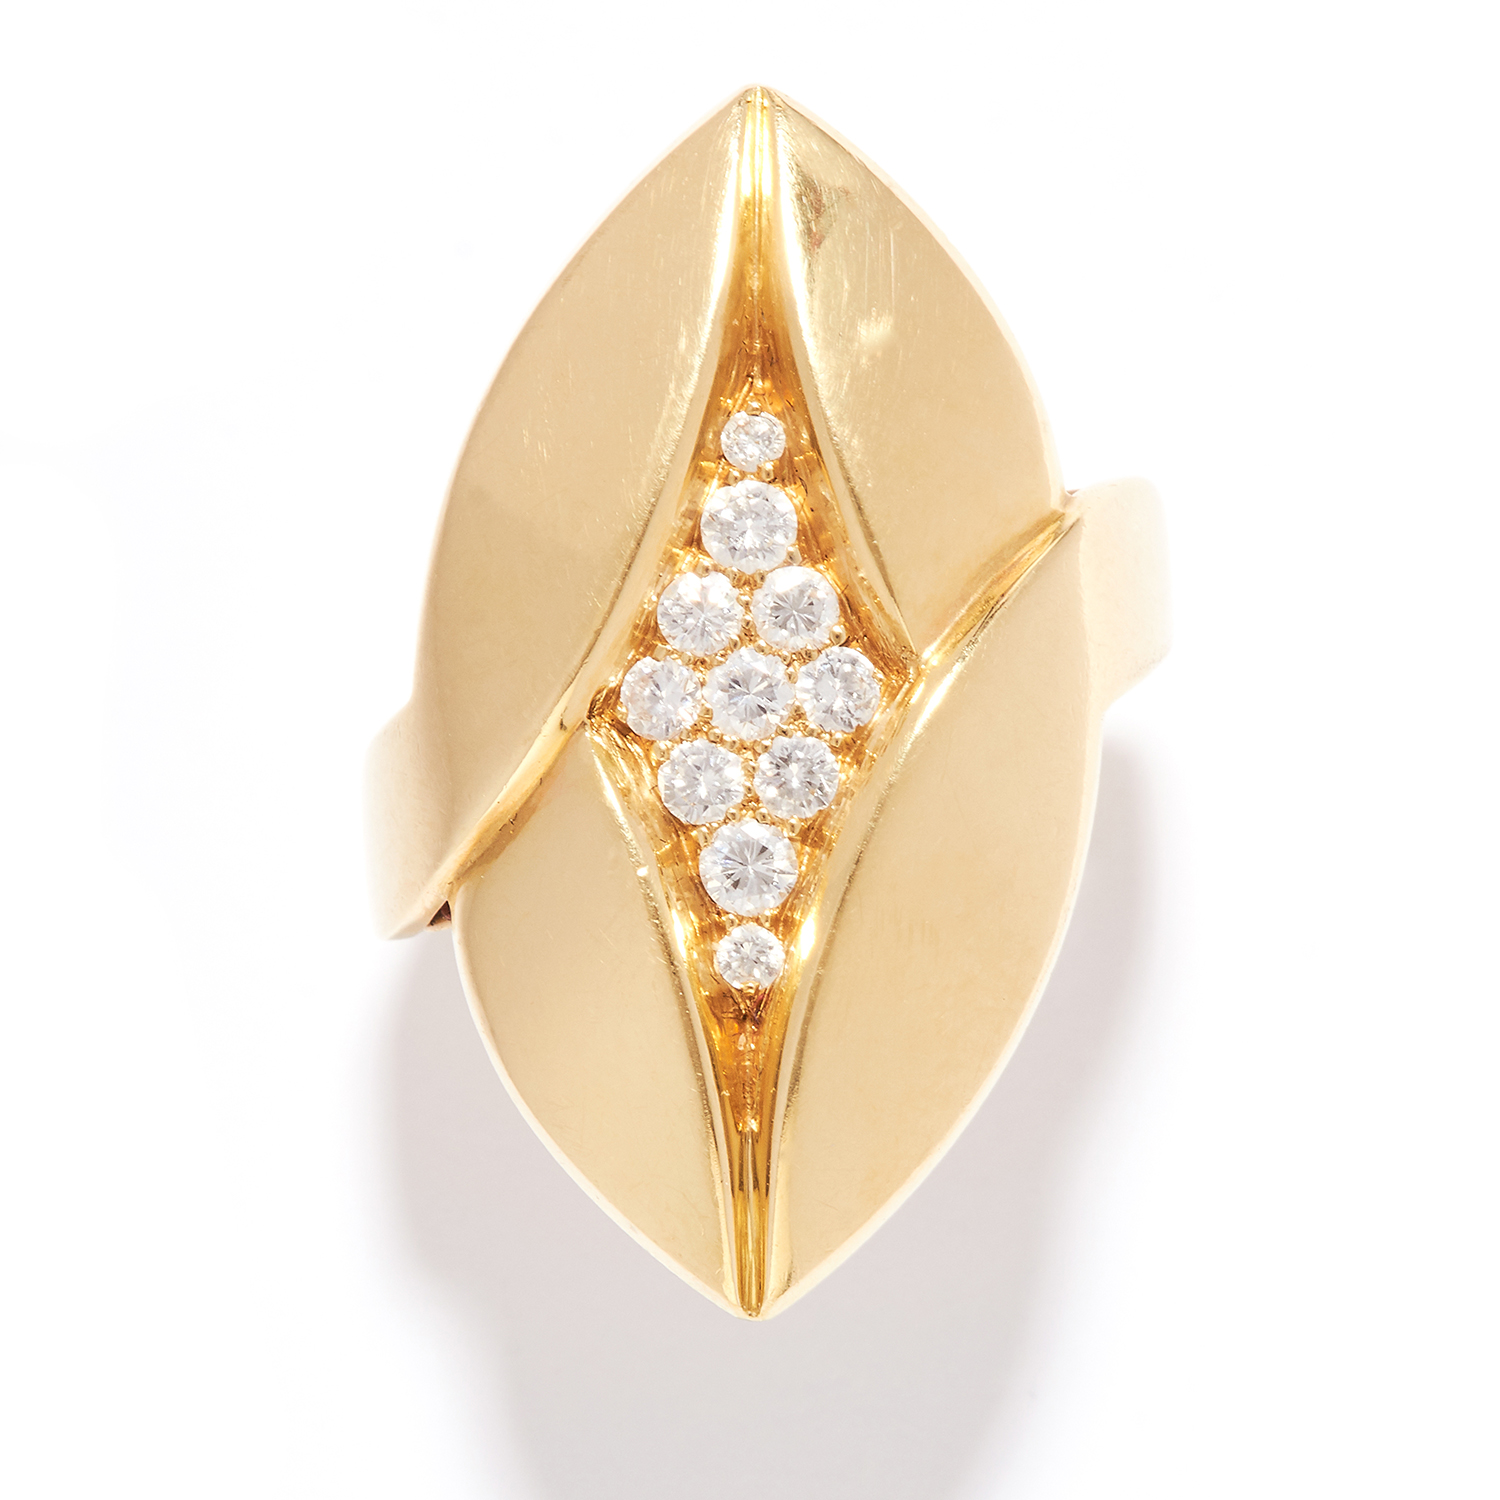 DIAMOND DRESS RING, BULGARI in 18ct yellow gold, the foliate navette face jewelled with round cut